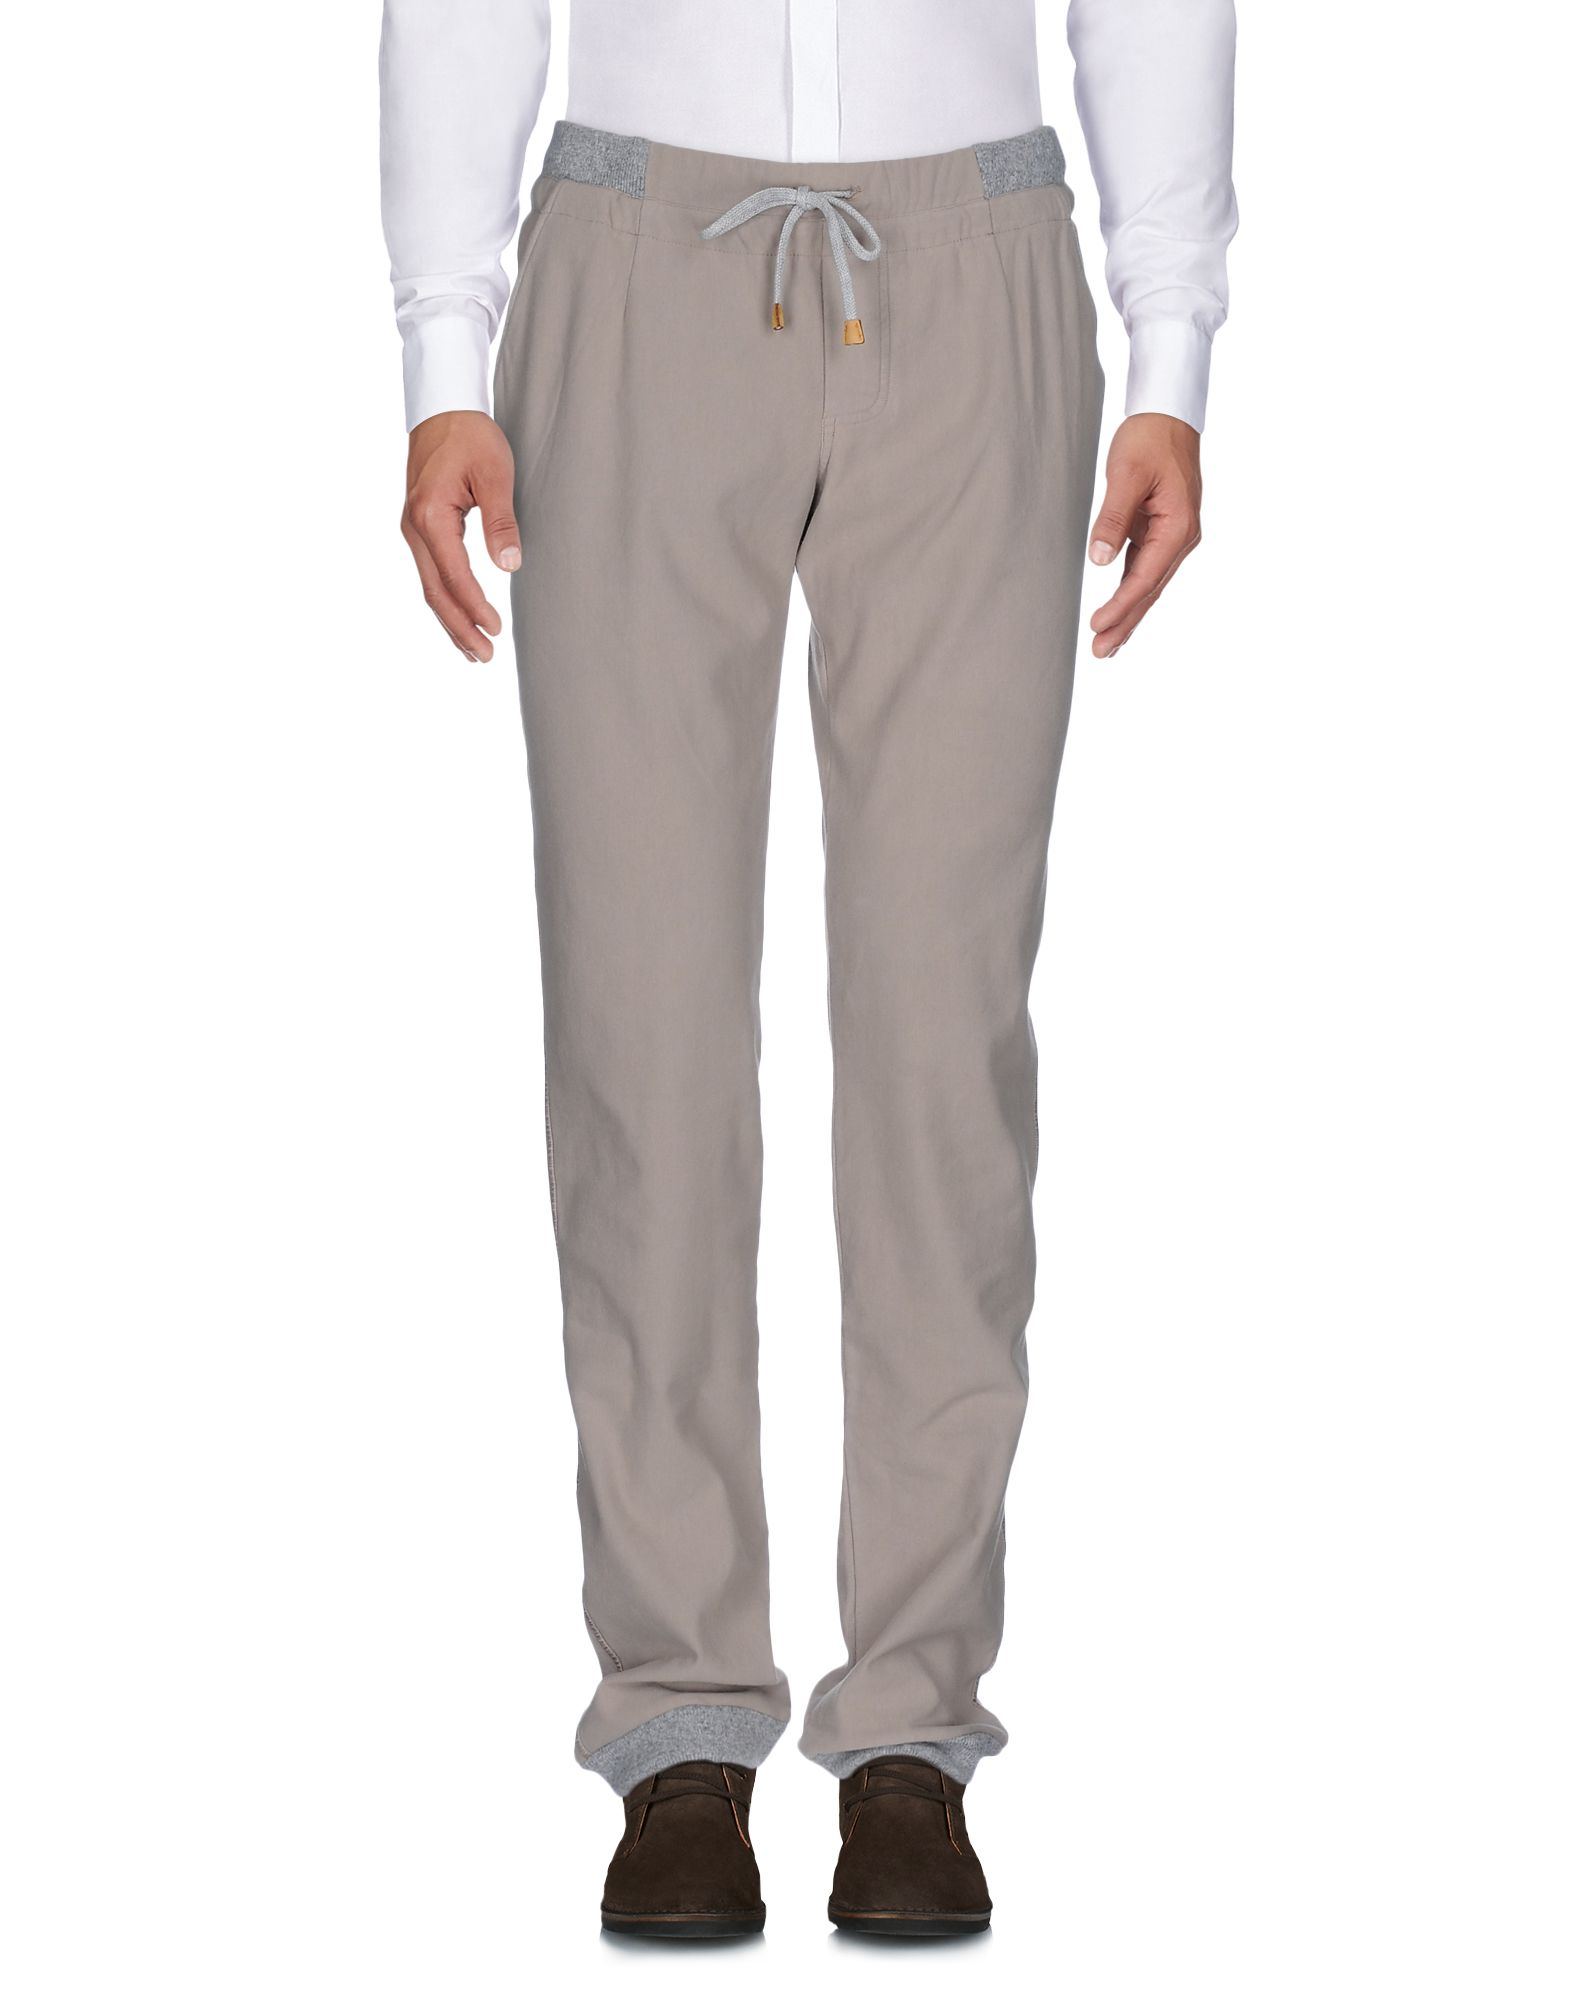 CAPOBIANCO Casual Pants in Sand